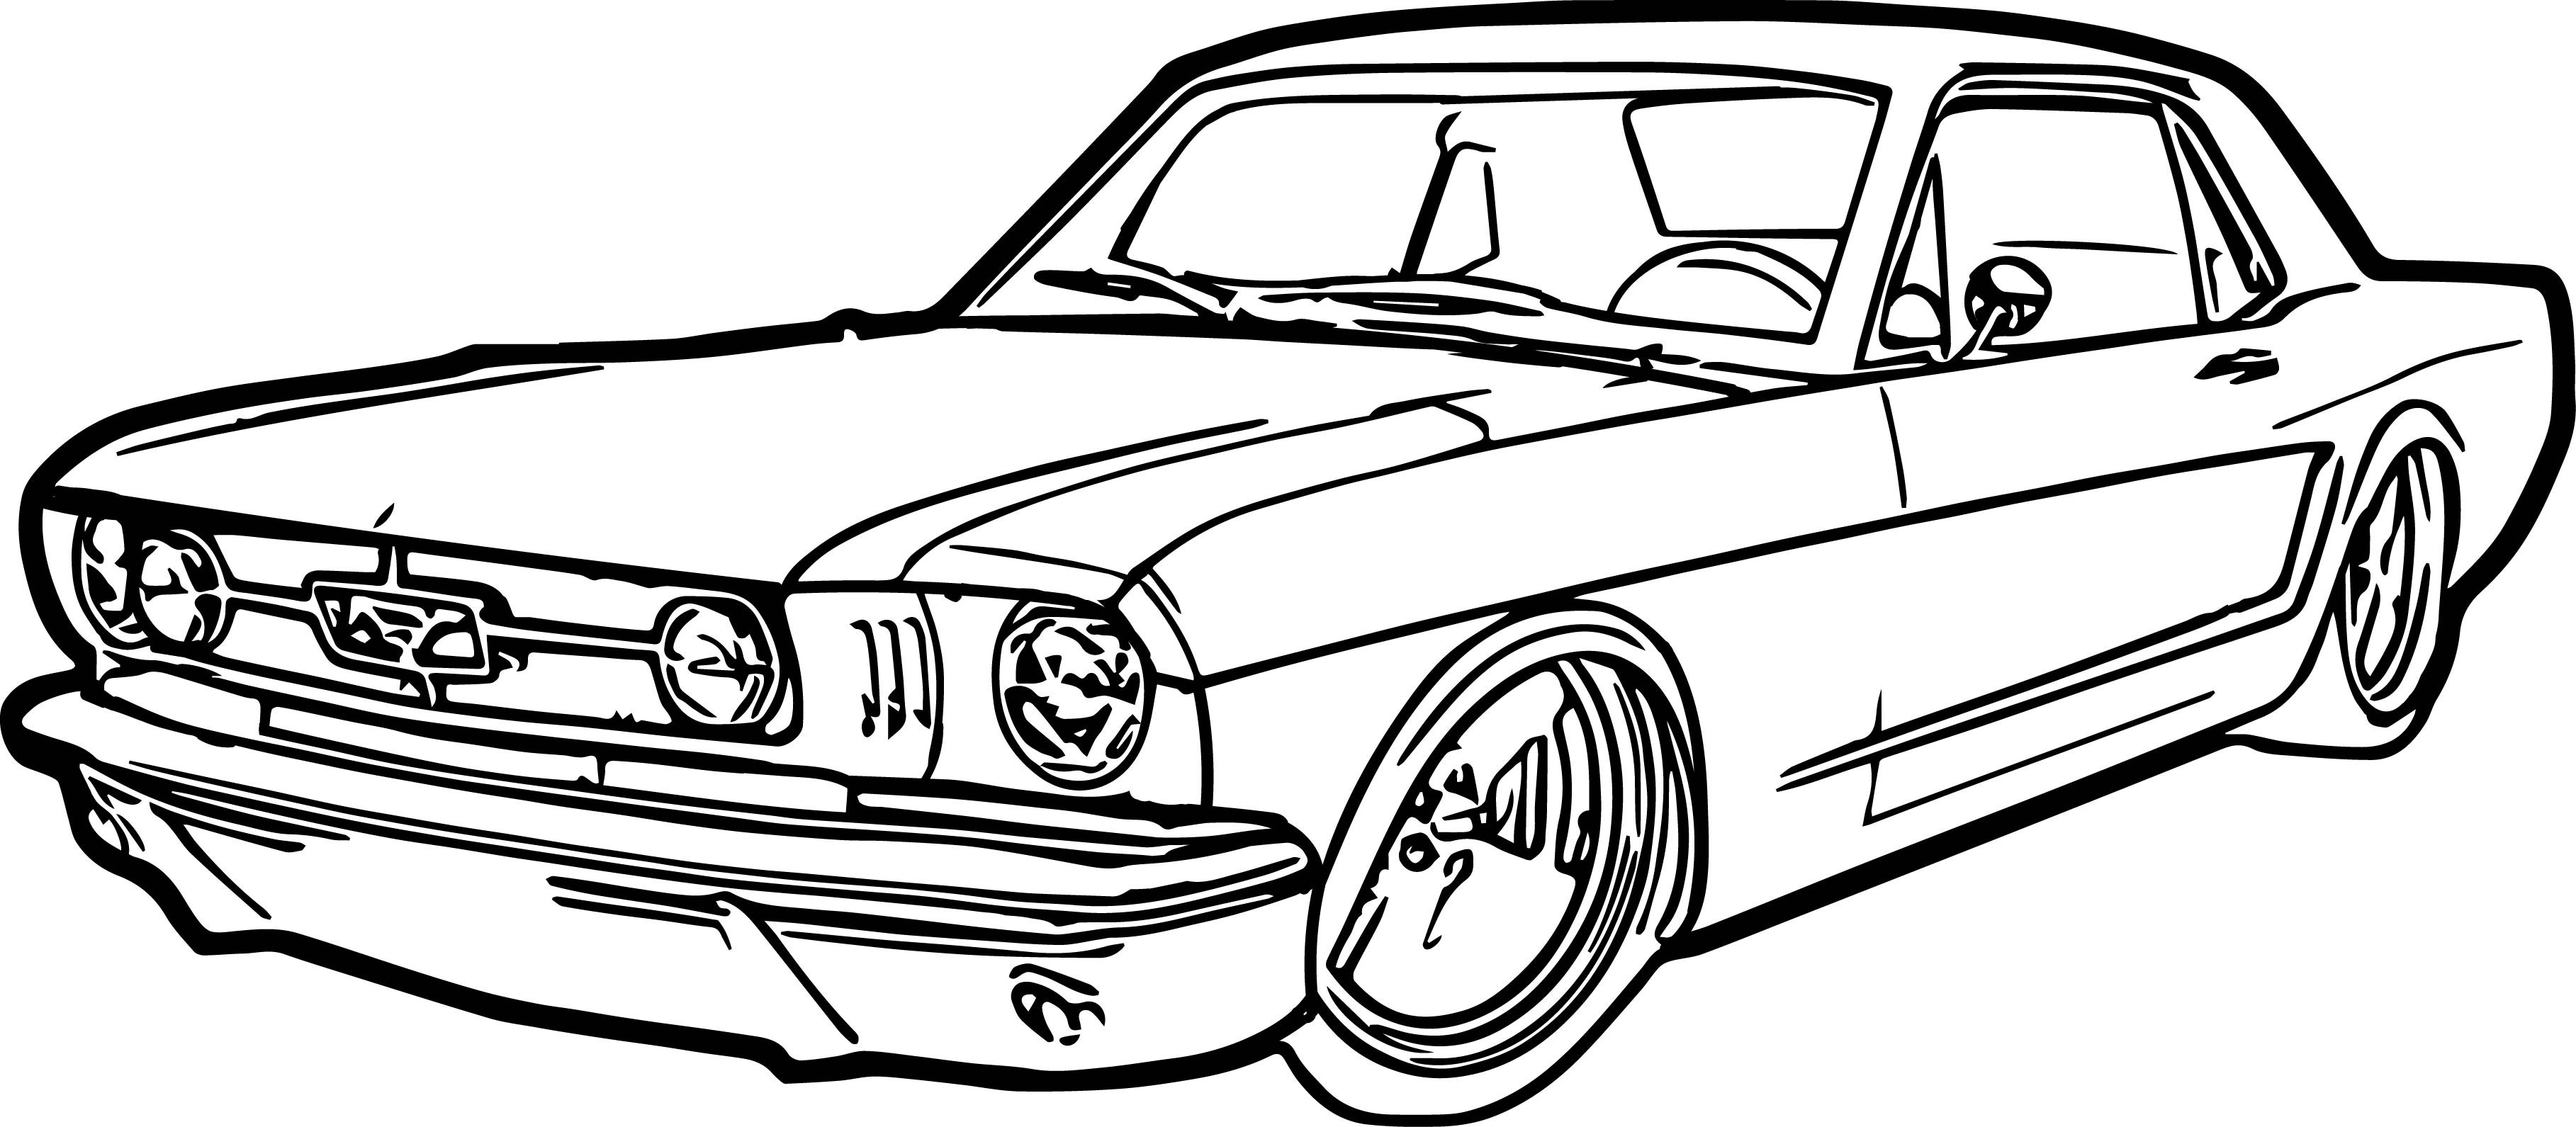 hot rod coloring sheets hot rod coloring page bing images art cars cars coloring rod sheets hot